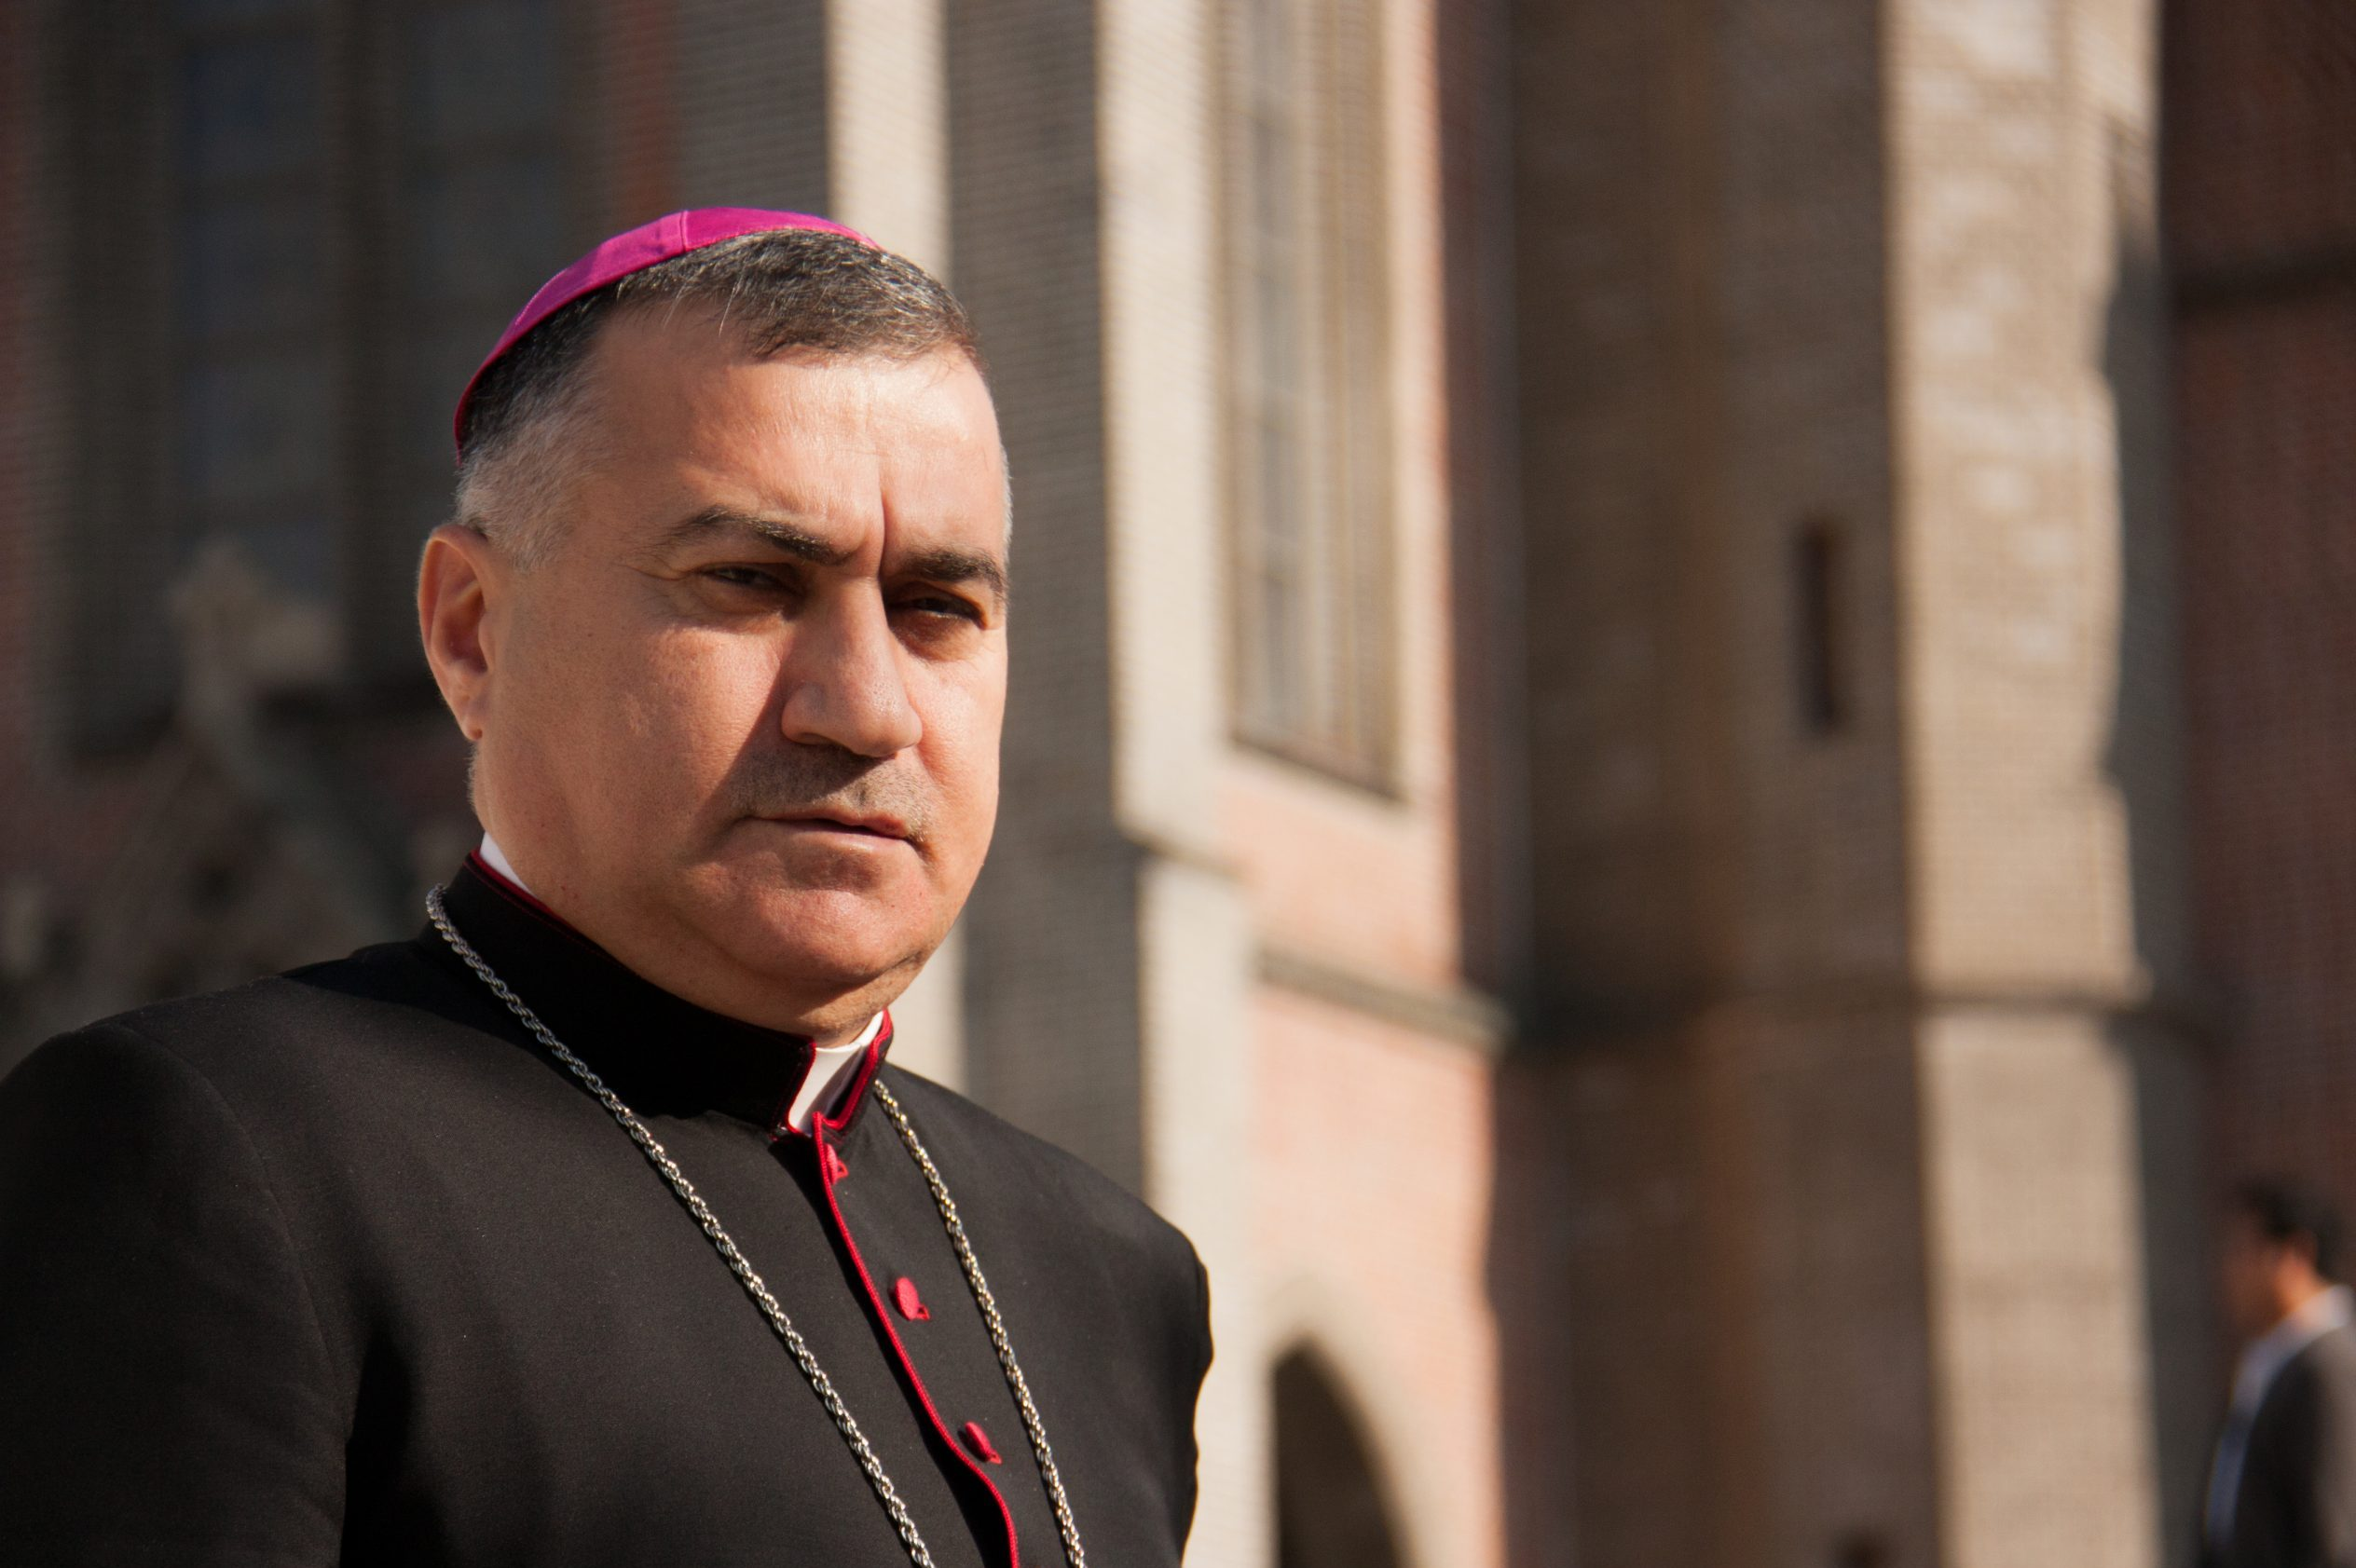 With image of Chaldean Catholic Archbishop Bashar Warda of Erbil (© Aid to the Church in Need)